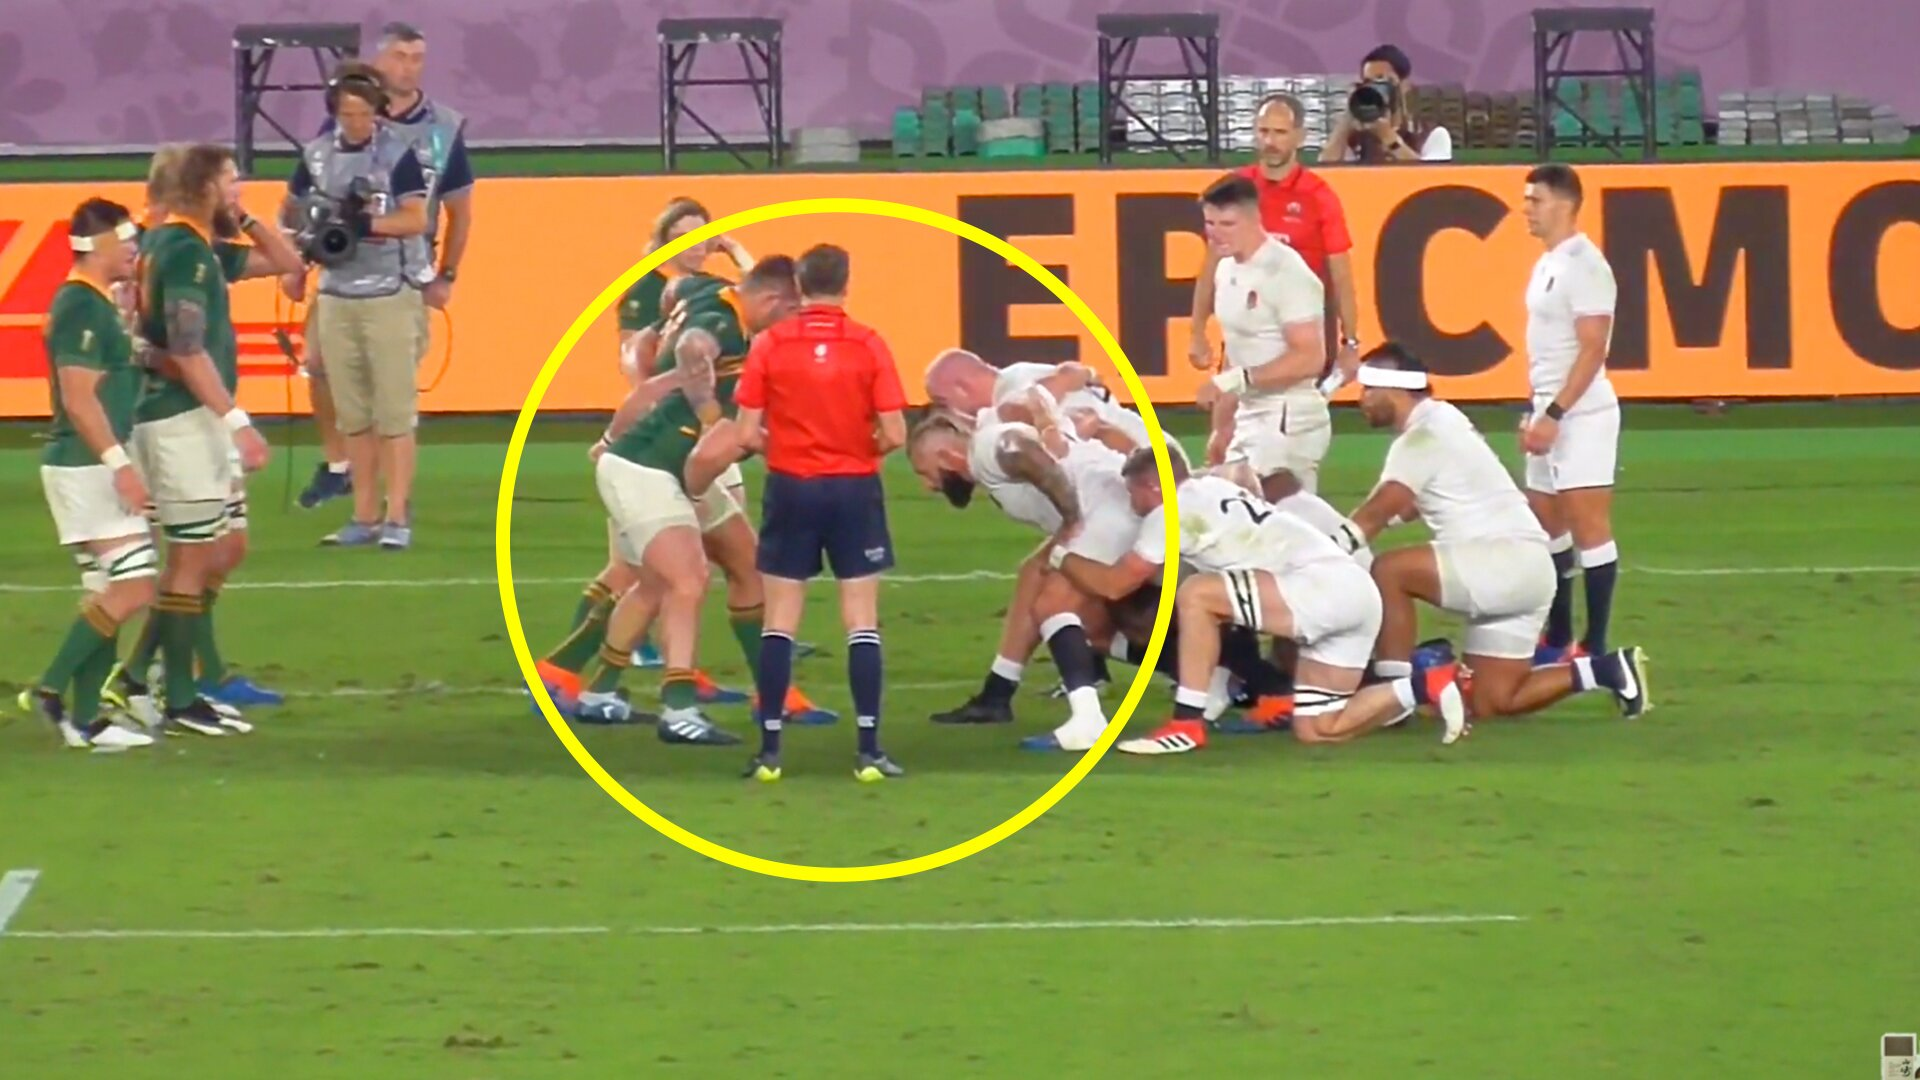 Mounting calls for South Africa to be stripped of World Cup win after undeniable evidence emerges showing officials helping Springboks - Rugby OnSlaug